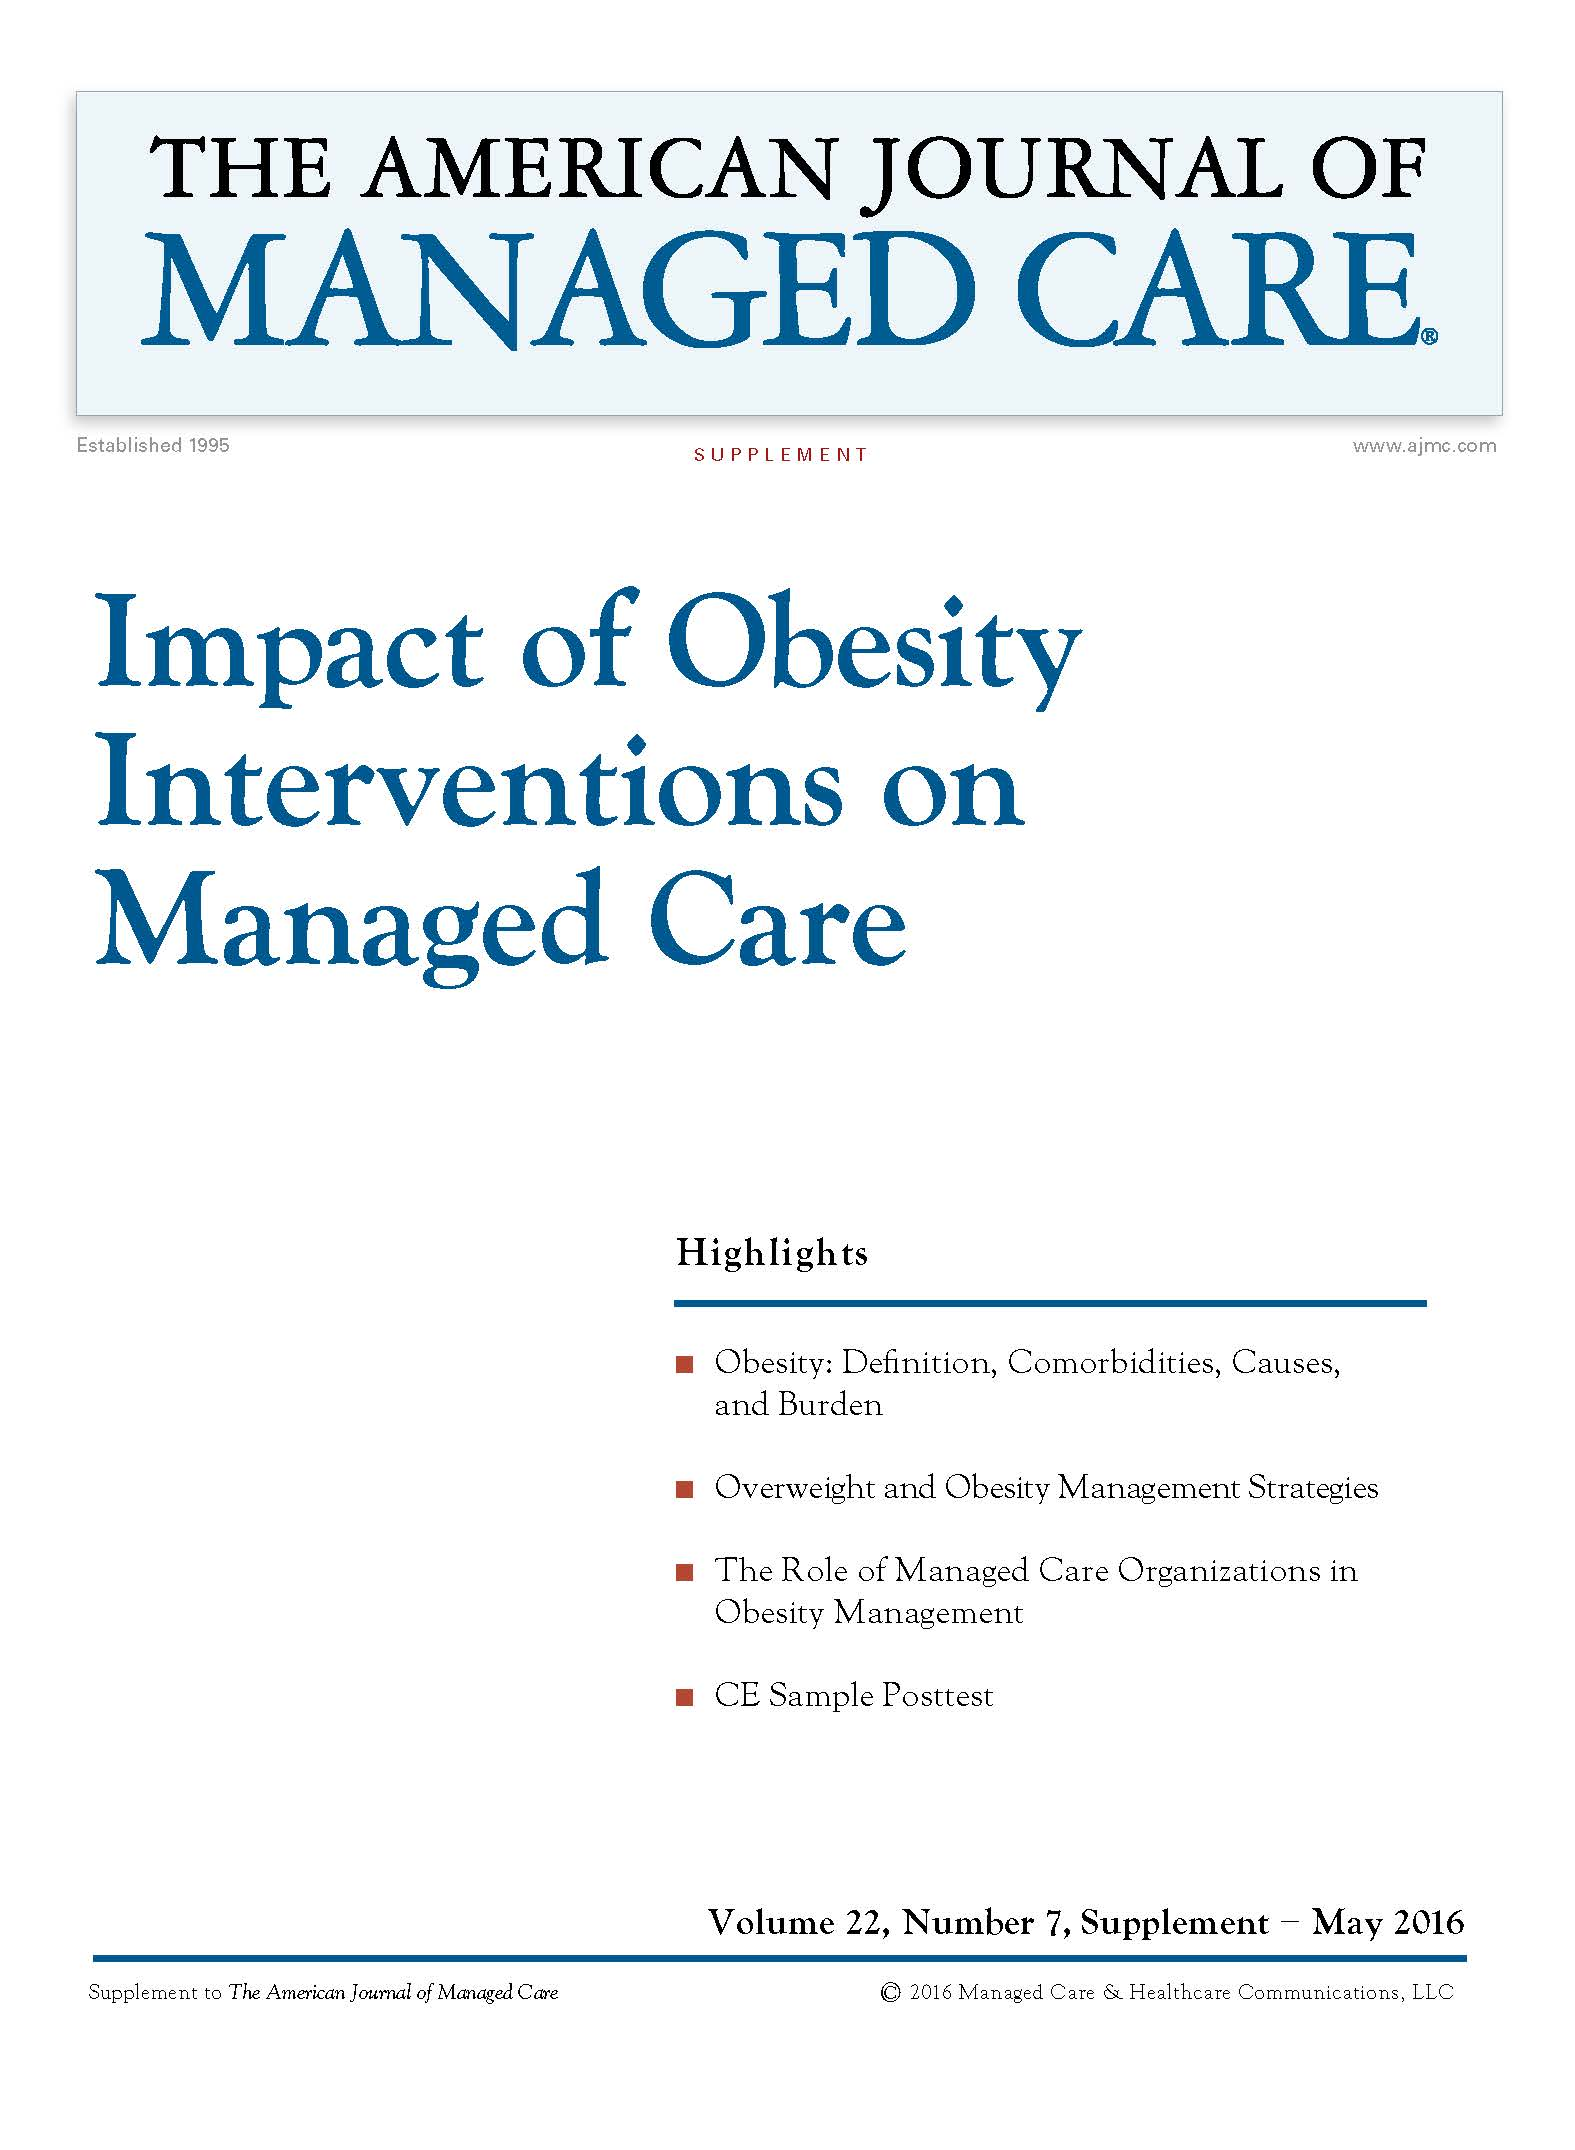 Impact of Obesity Interventions on Managed Care